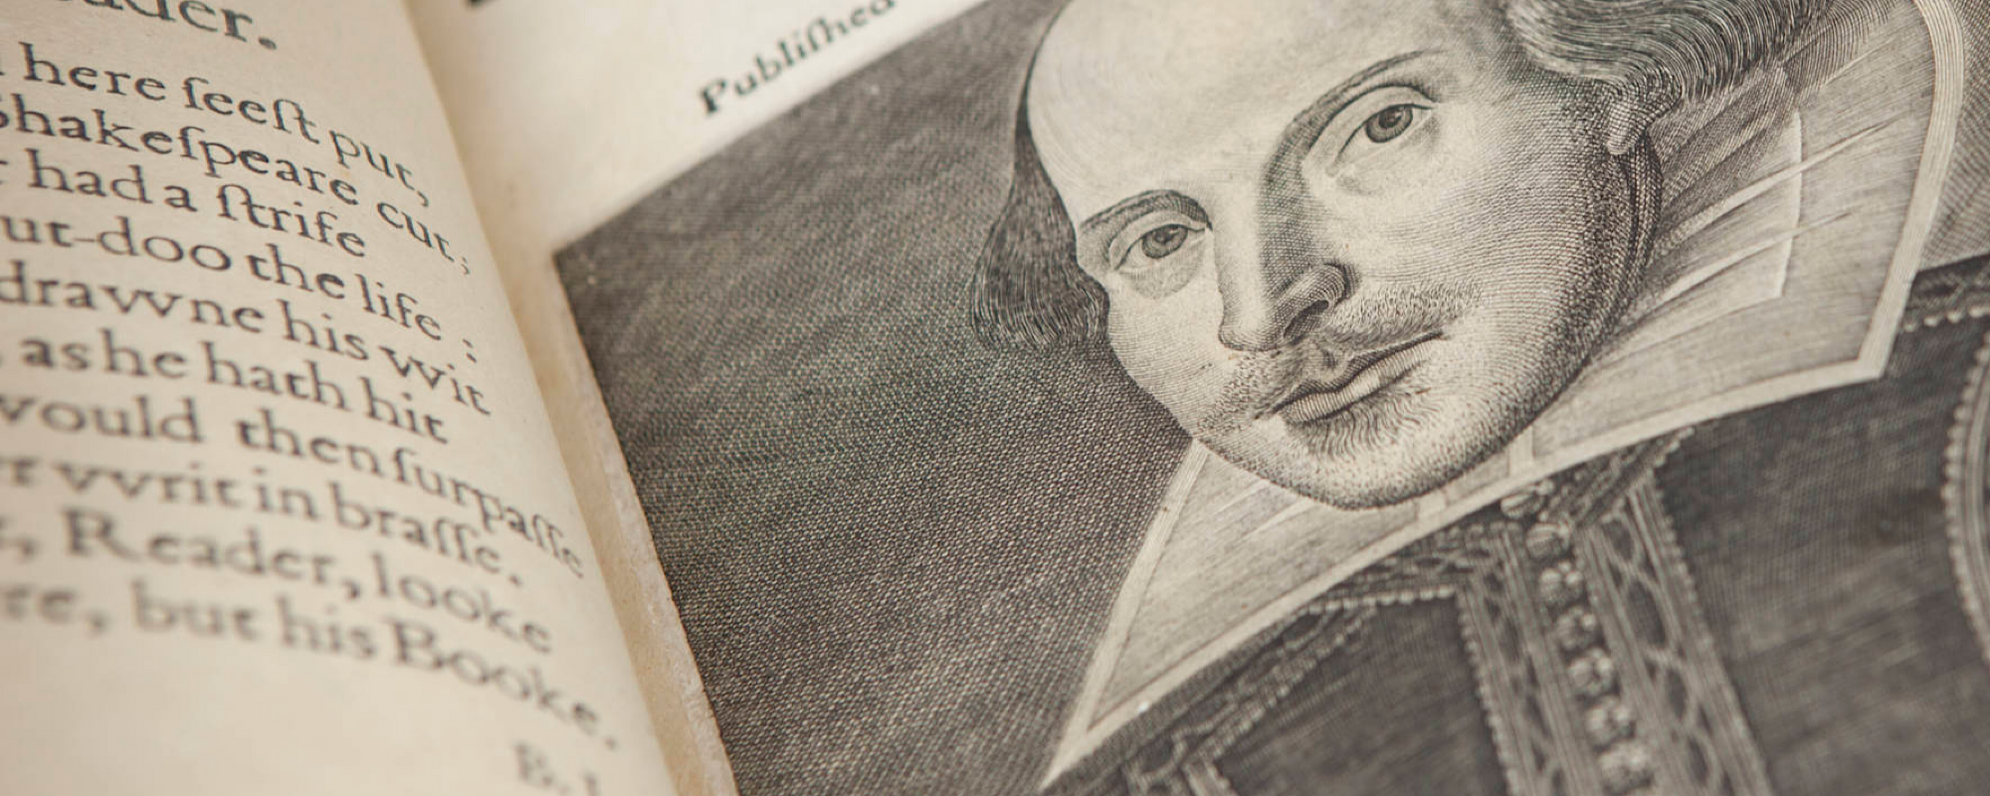 An open page of a book shows an illustration of the face of William Shakespeare